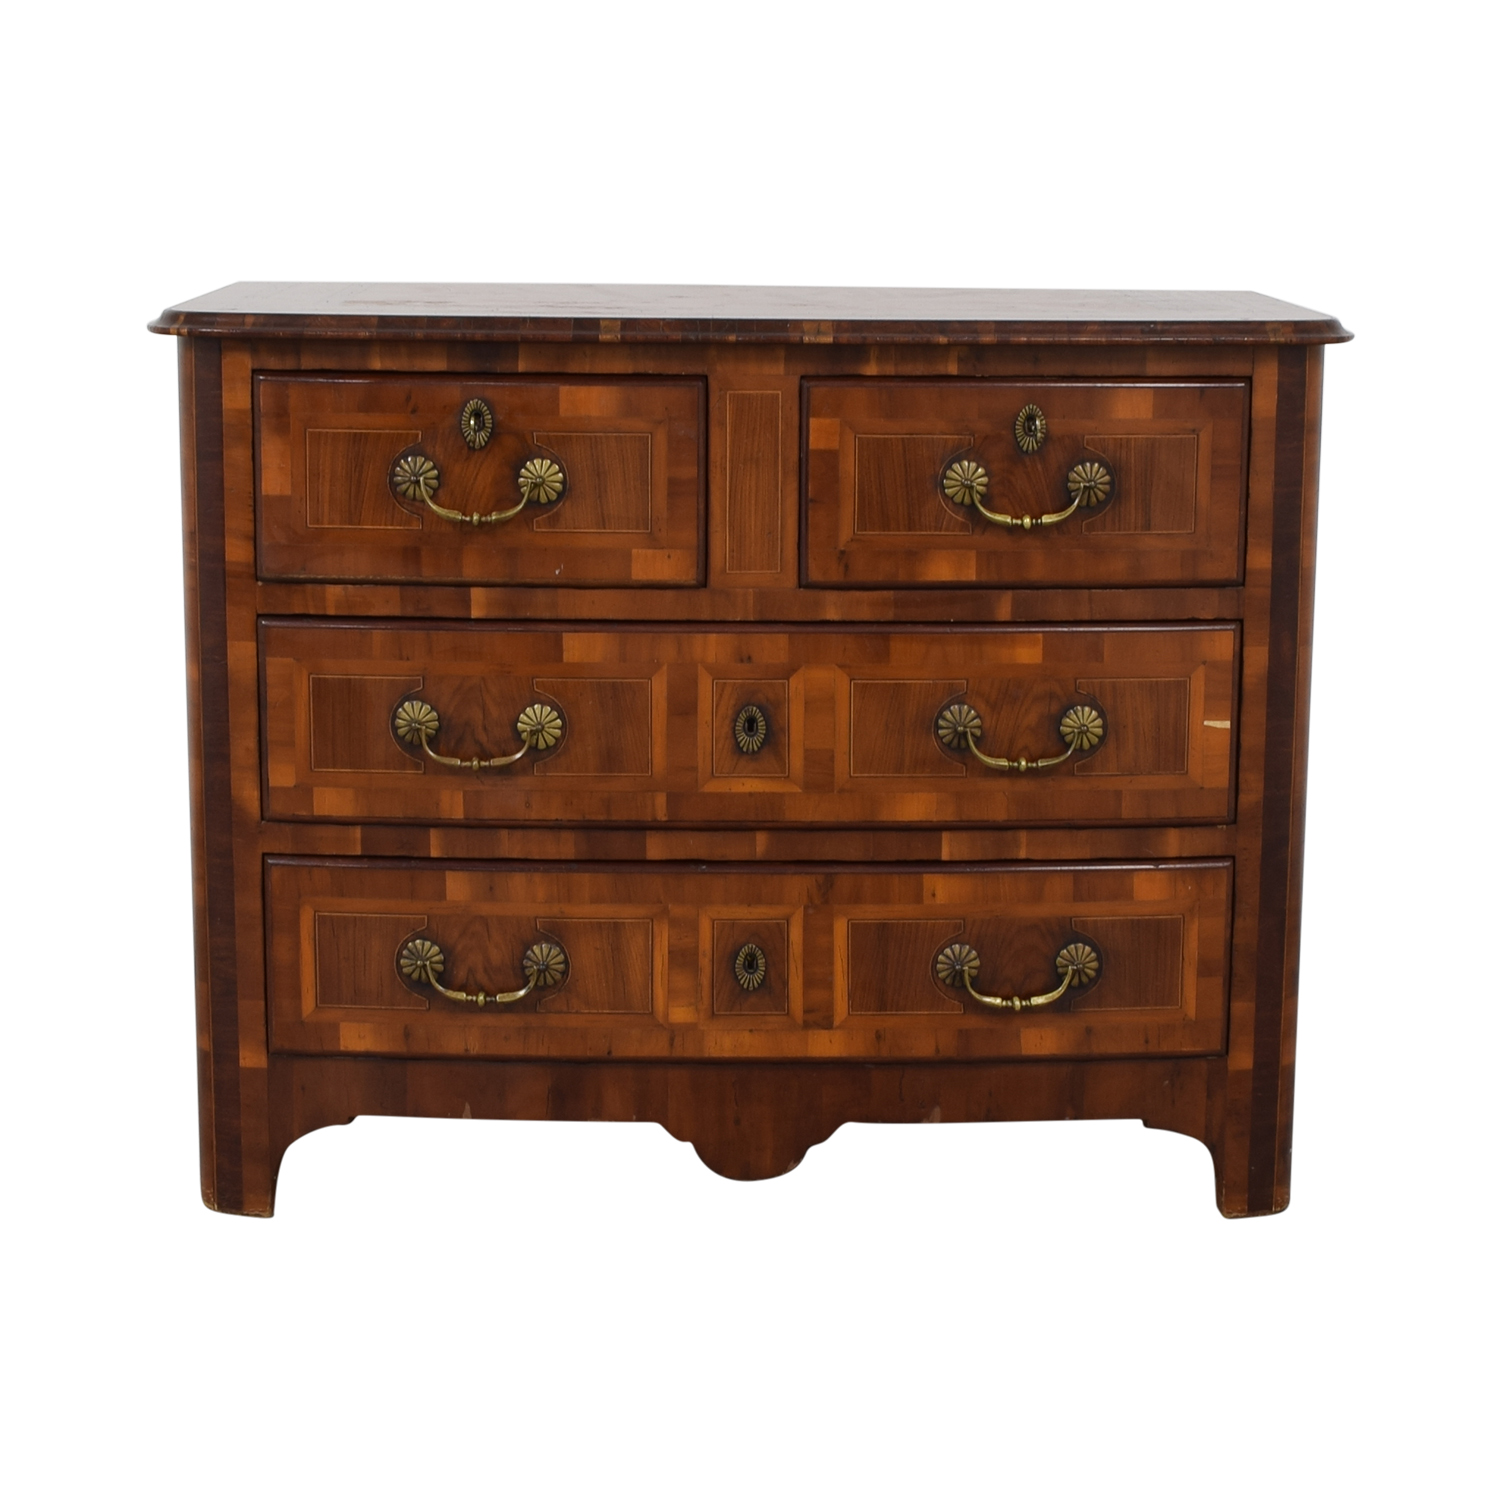 Lillian August Lillian August Wooden Dresser Brown